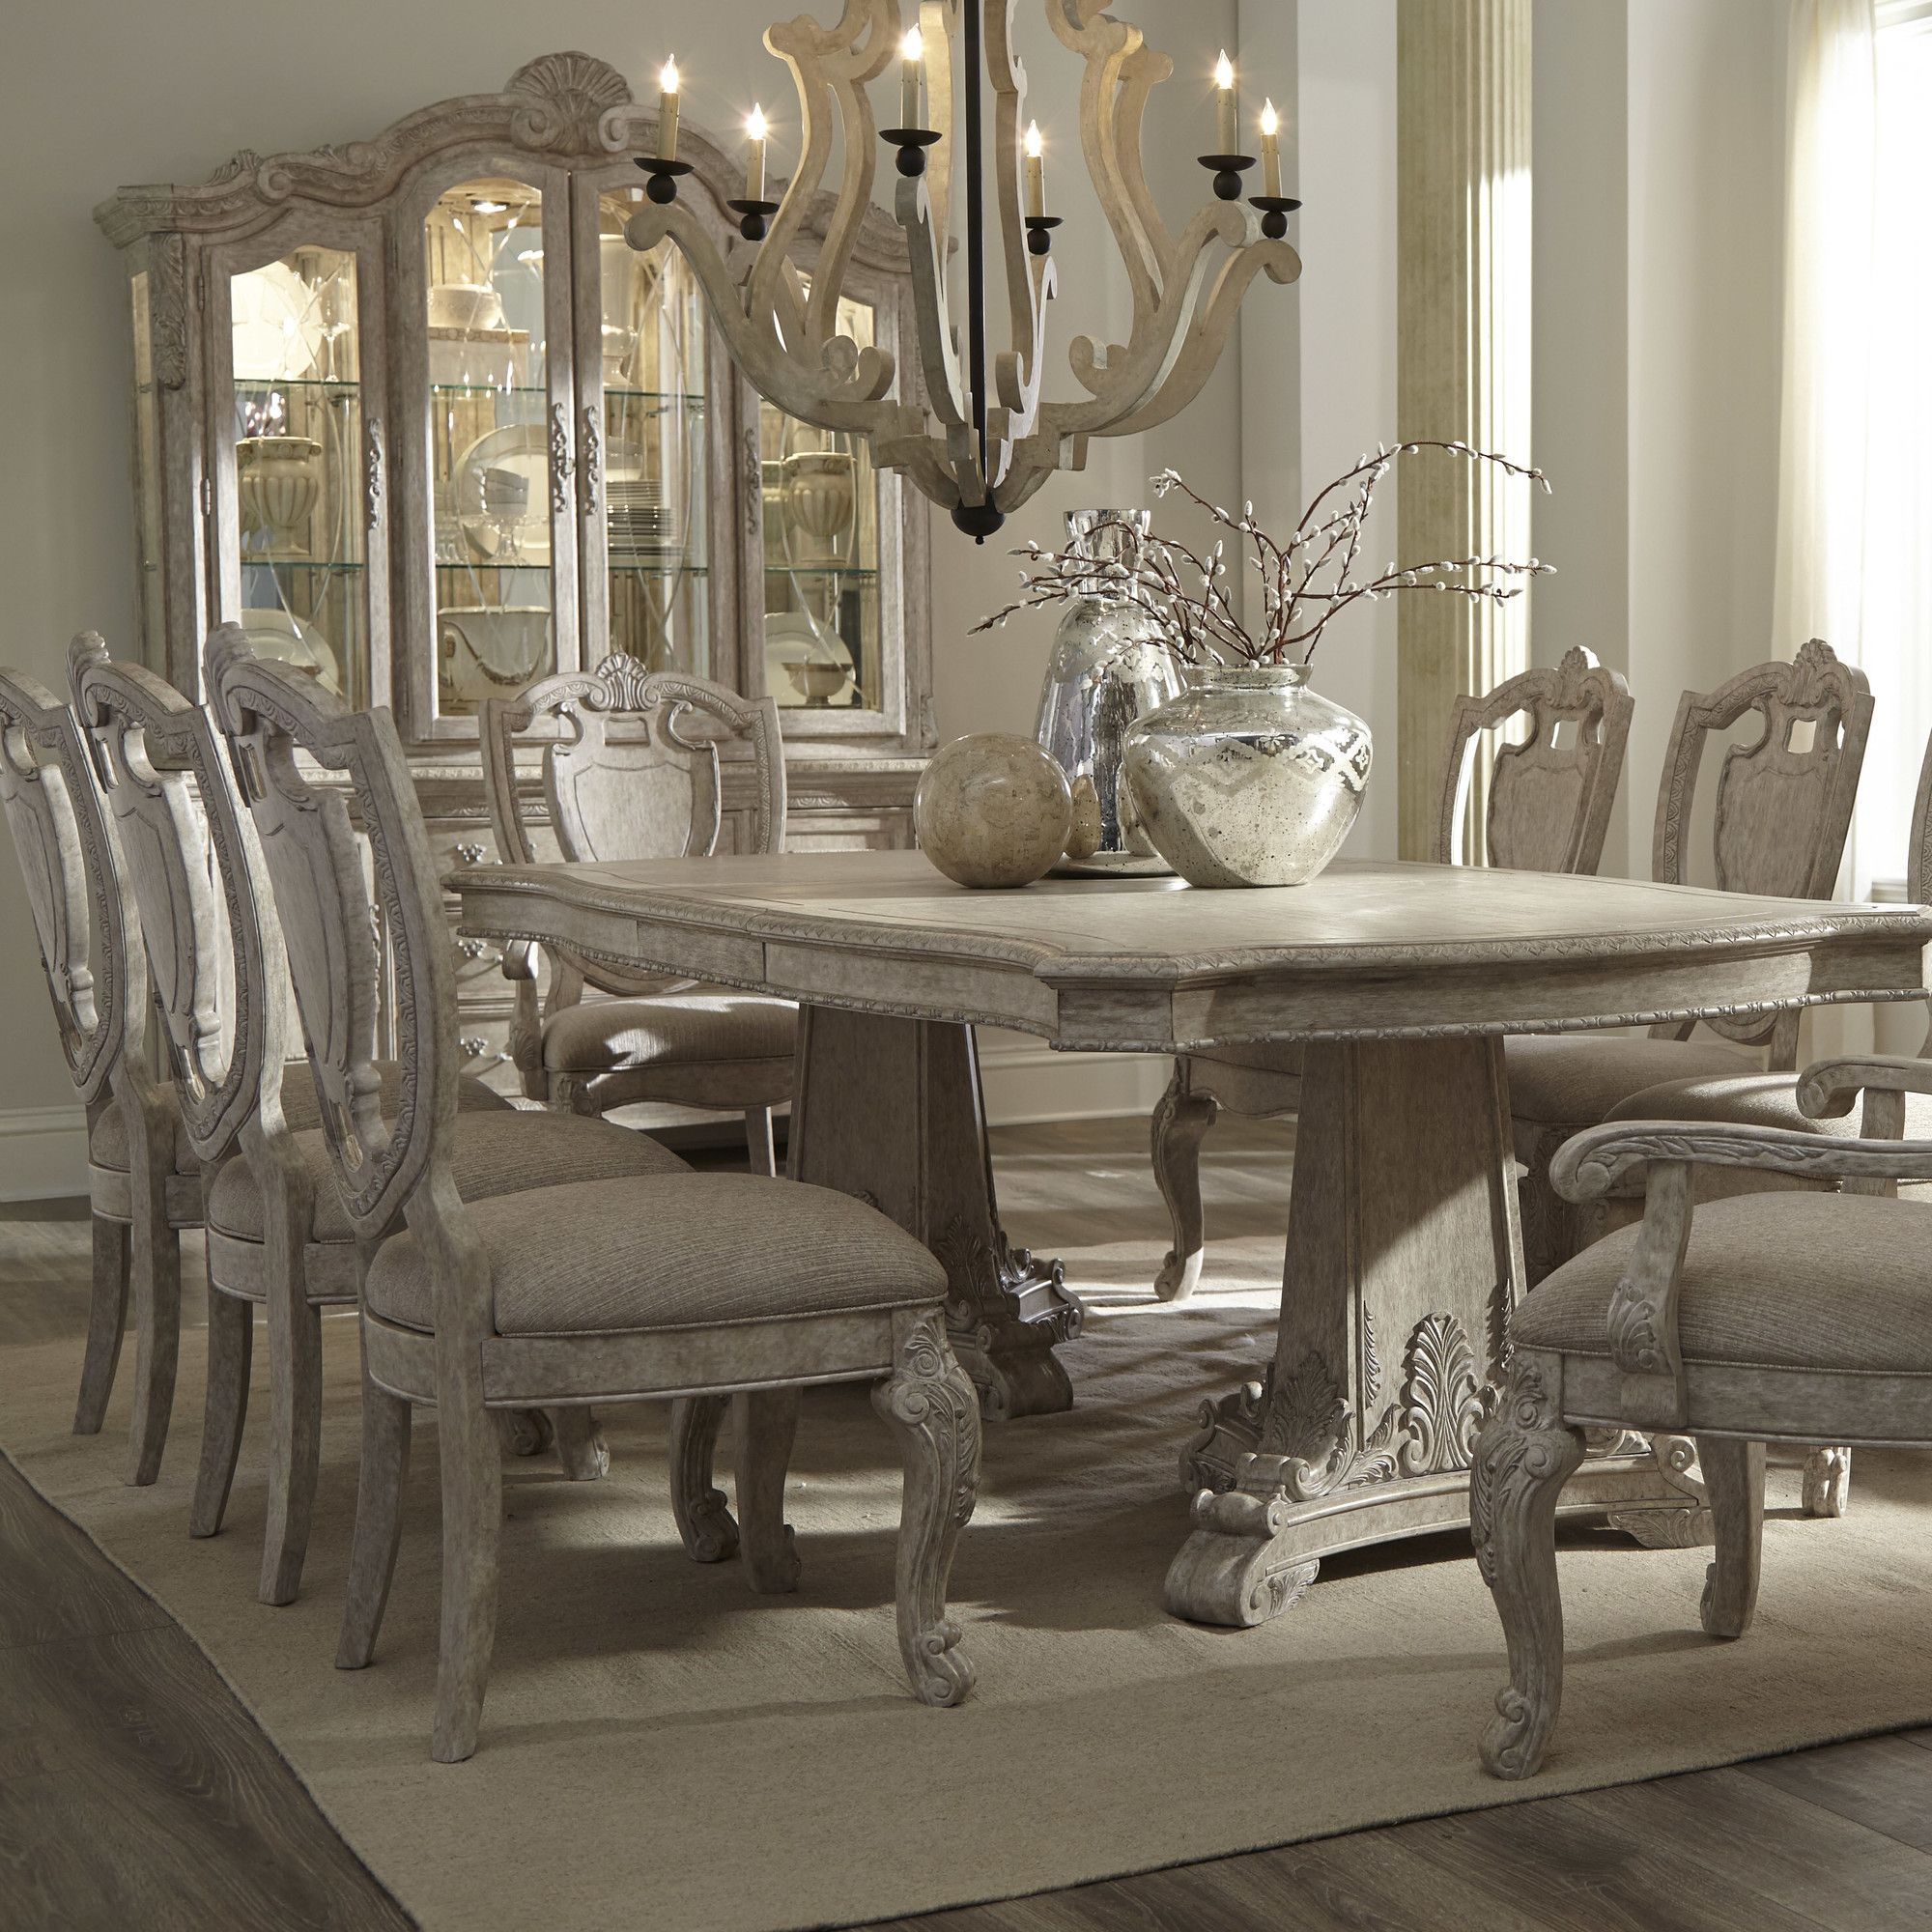 China Cabinet And Dining Room Set: Mom Home Ideas In 2019